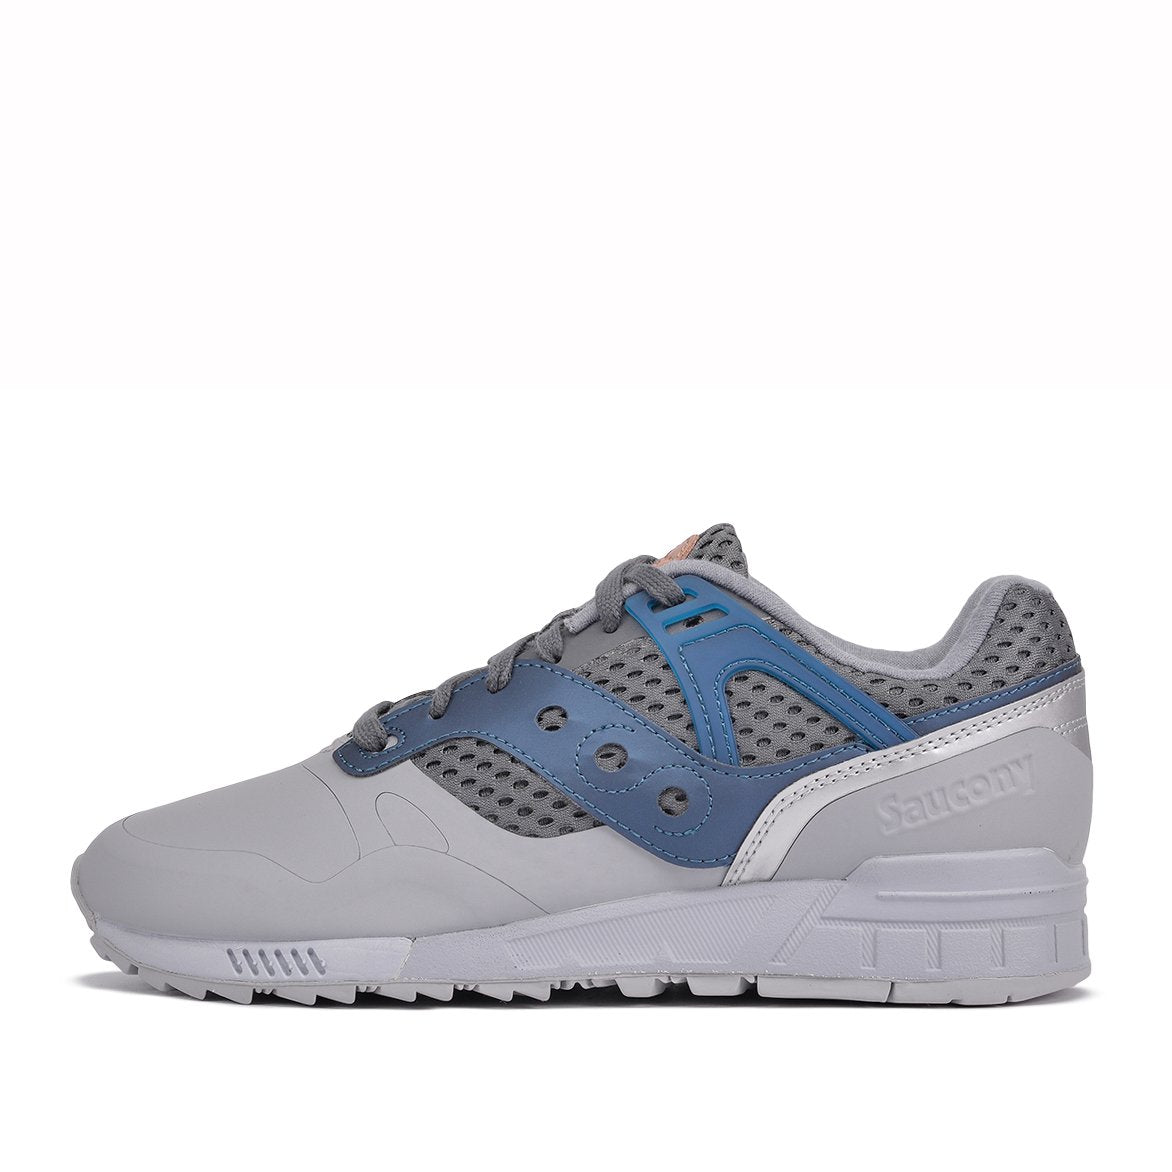 "GRID SD HT ""RIVERSTONE"" - GREY / BLUE"